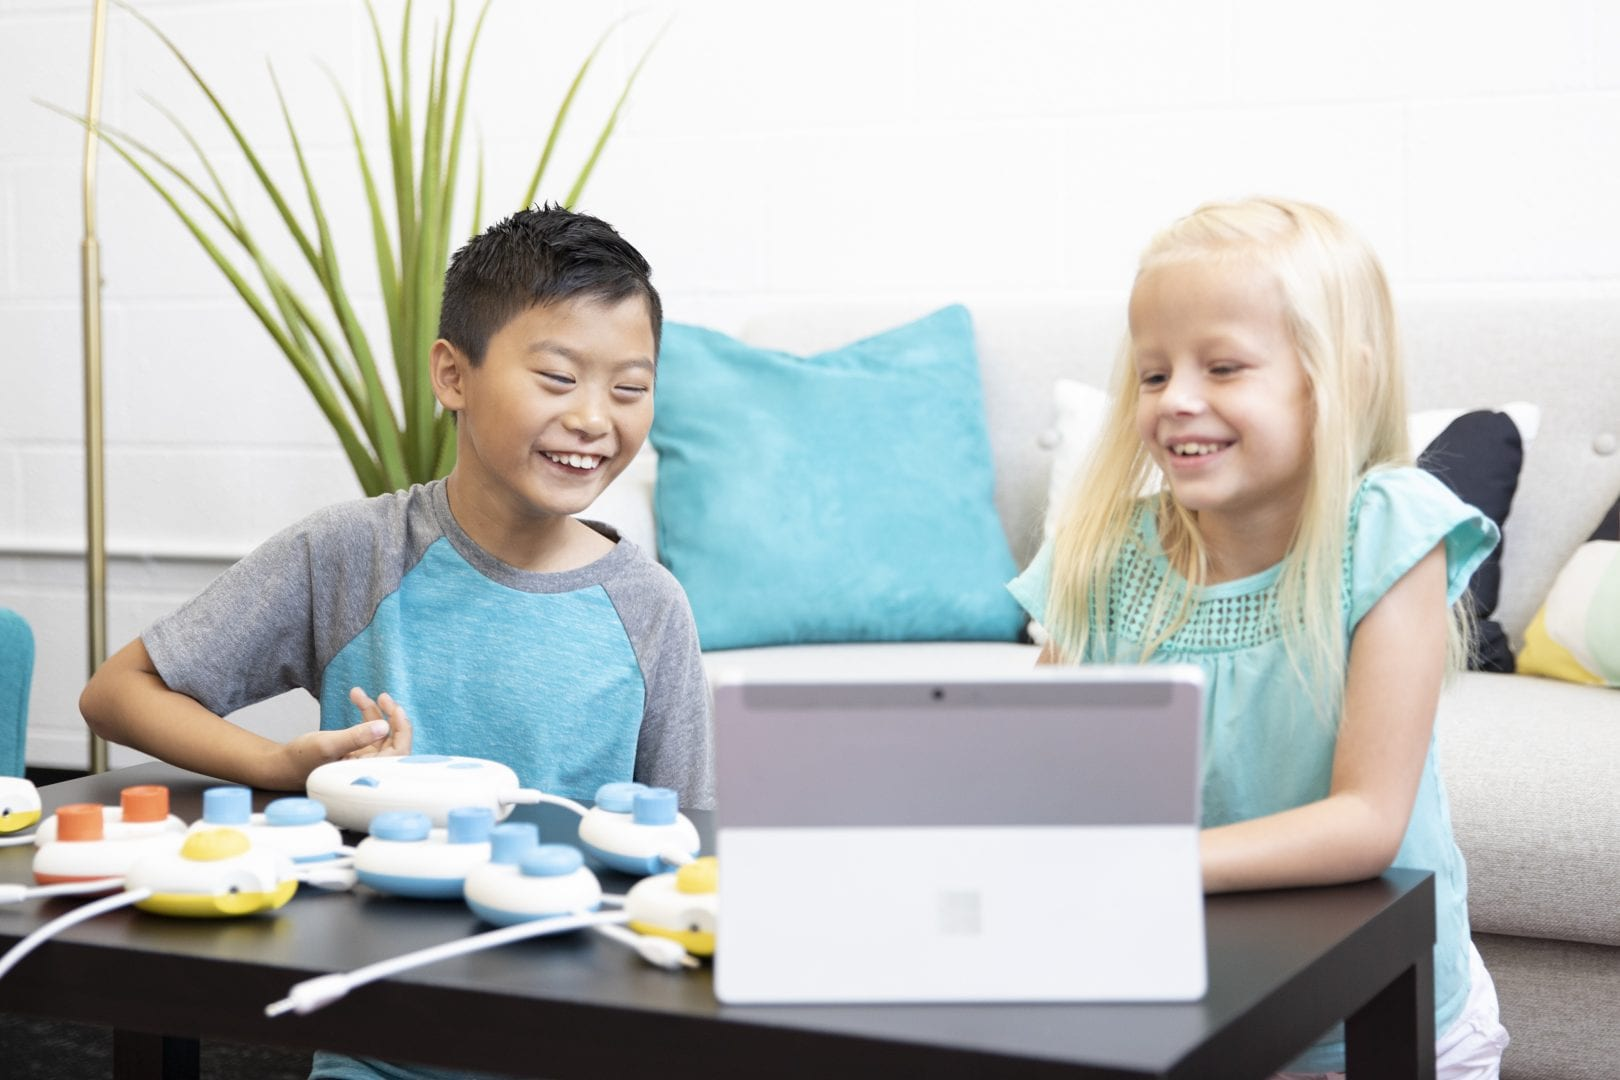 a boy and girl in a living room playing with Code Jumper